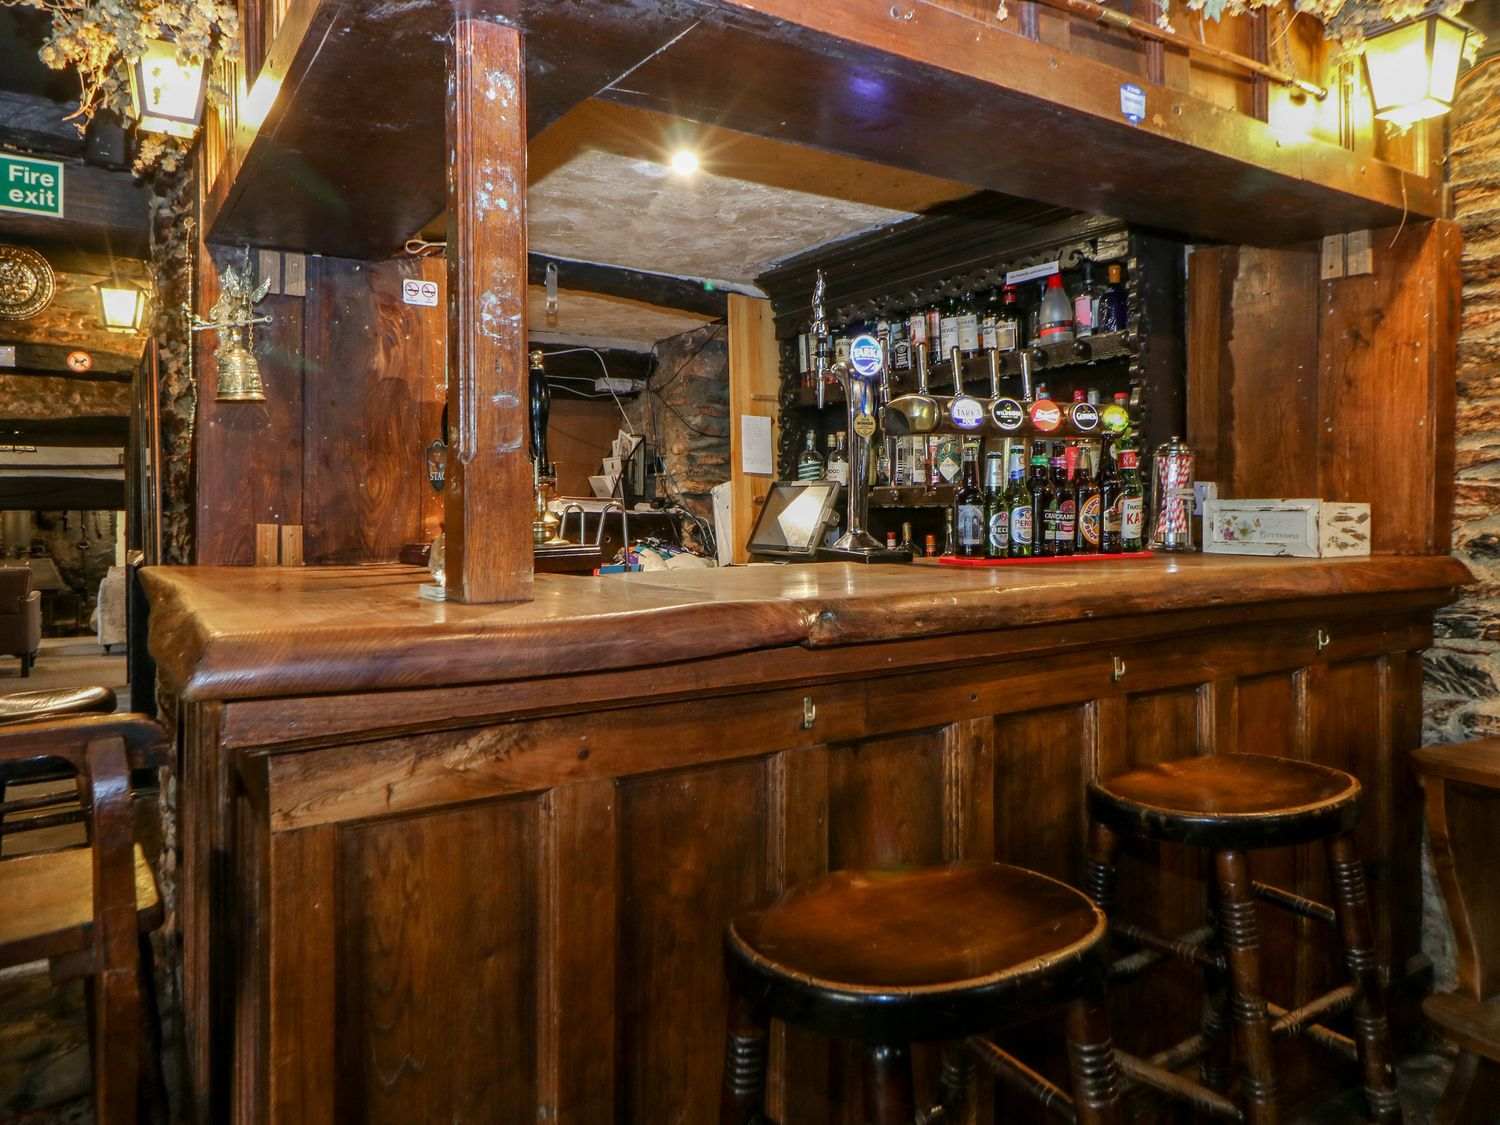 The bar can be fully stocked before you arrive